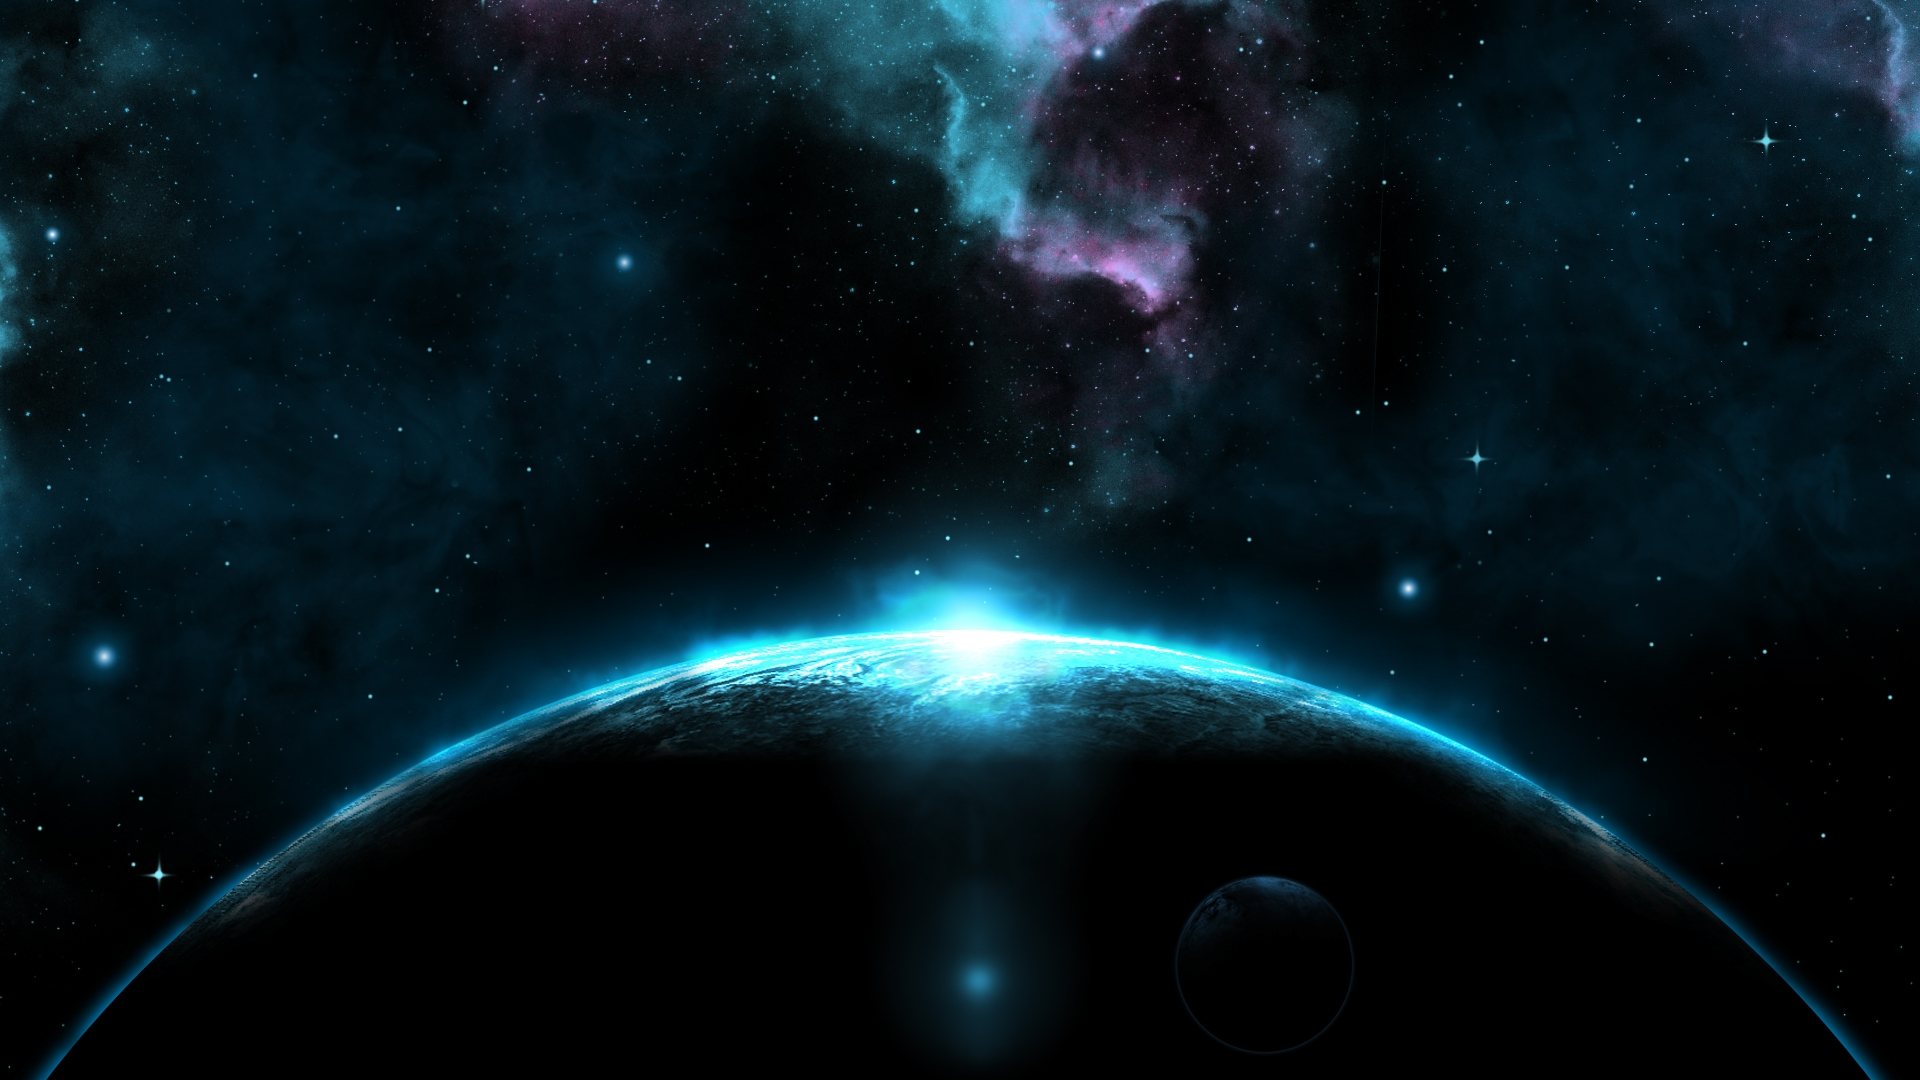 Cosmic OSX Wallpaper